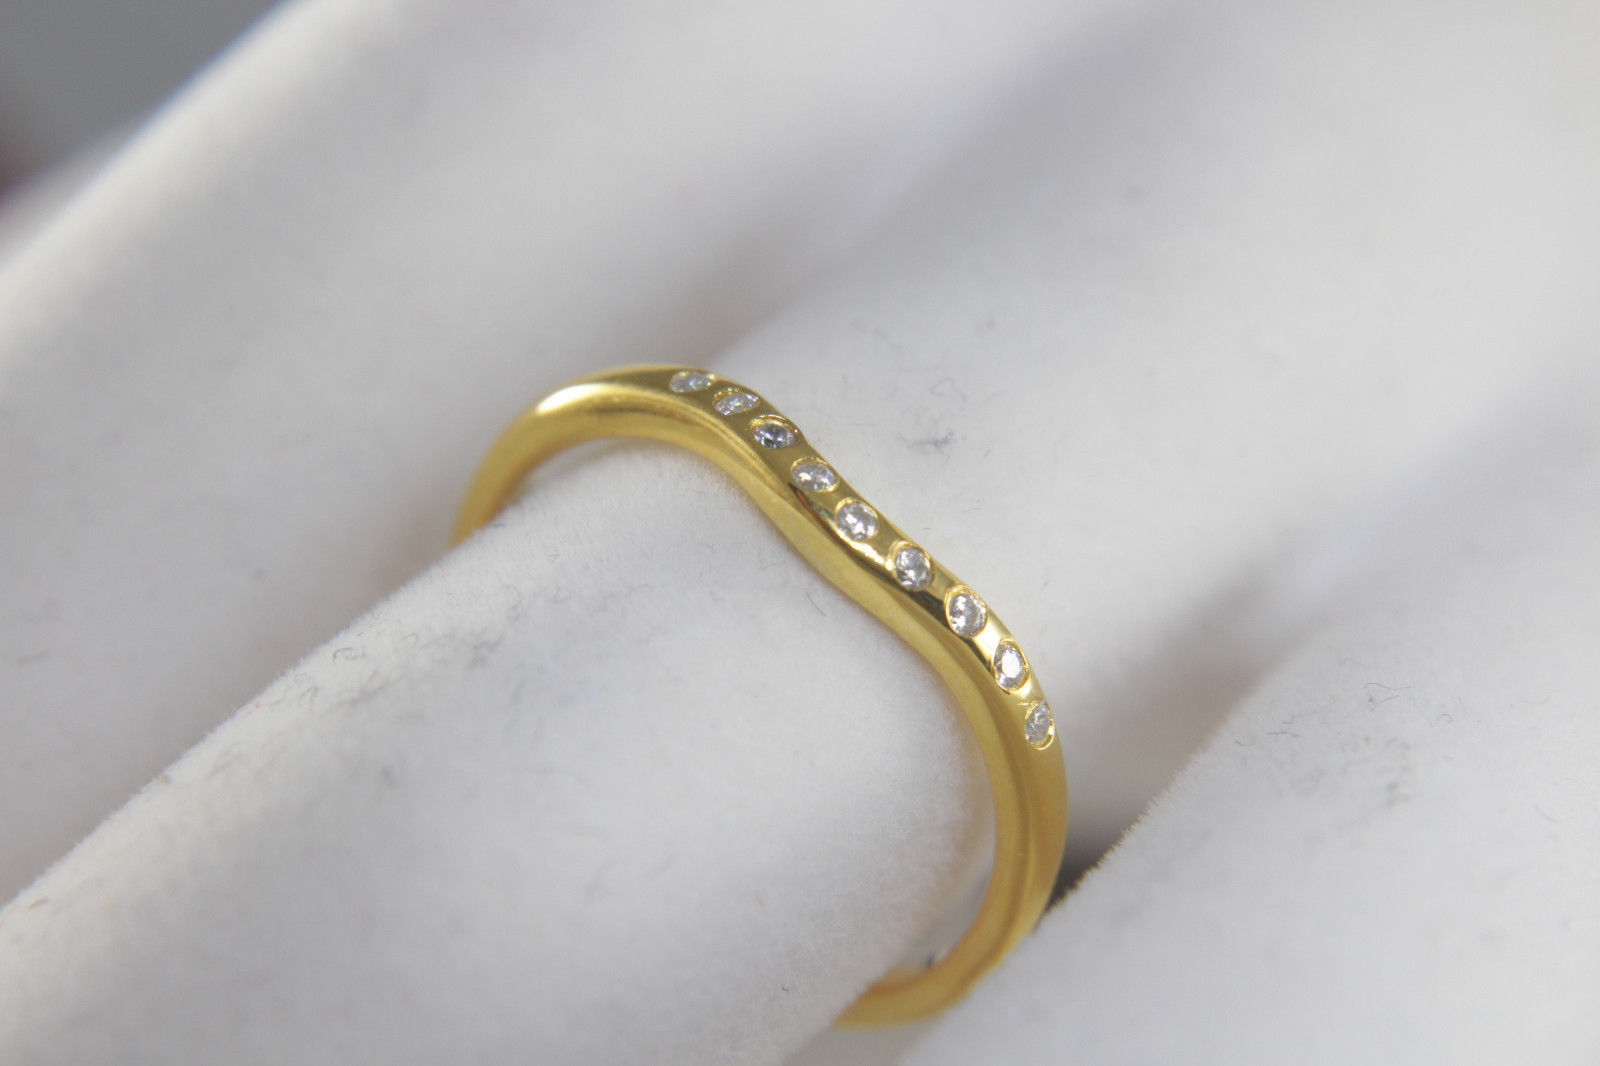 Solid 18k Yellow Gold Simple Yet Elegant White Diamond Curved Anniversary Ring